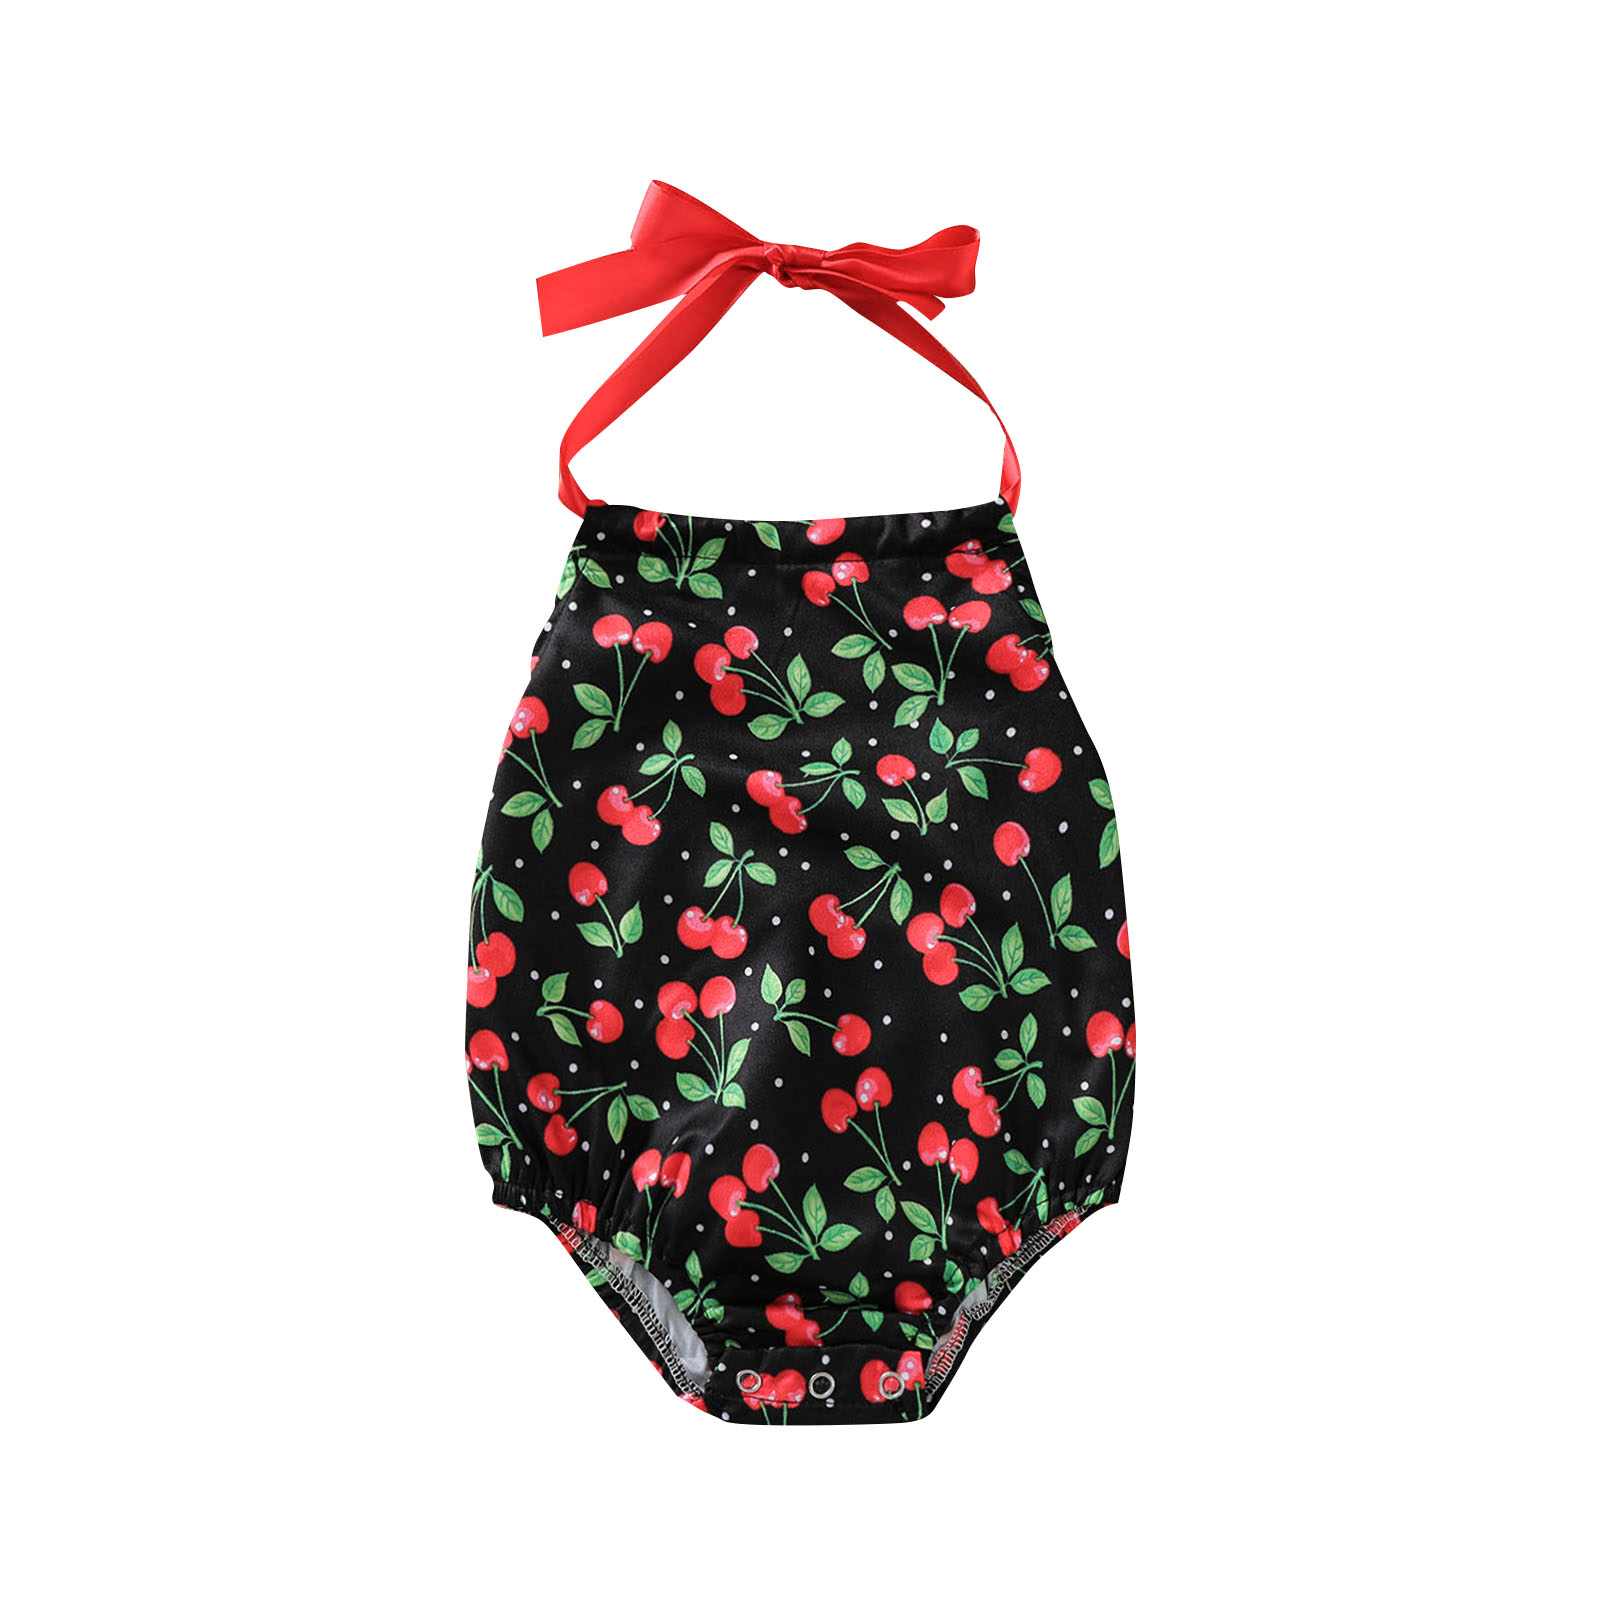 Newborn Infant Baby Girls Sweet Cherry Print Rompers Halter Lace-up Backless Bodysuit Jumpsuits with Crotch Button 0-24M